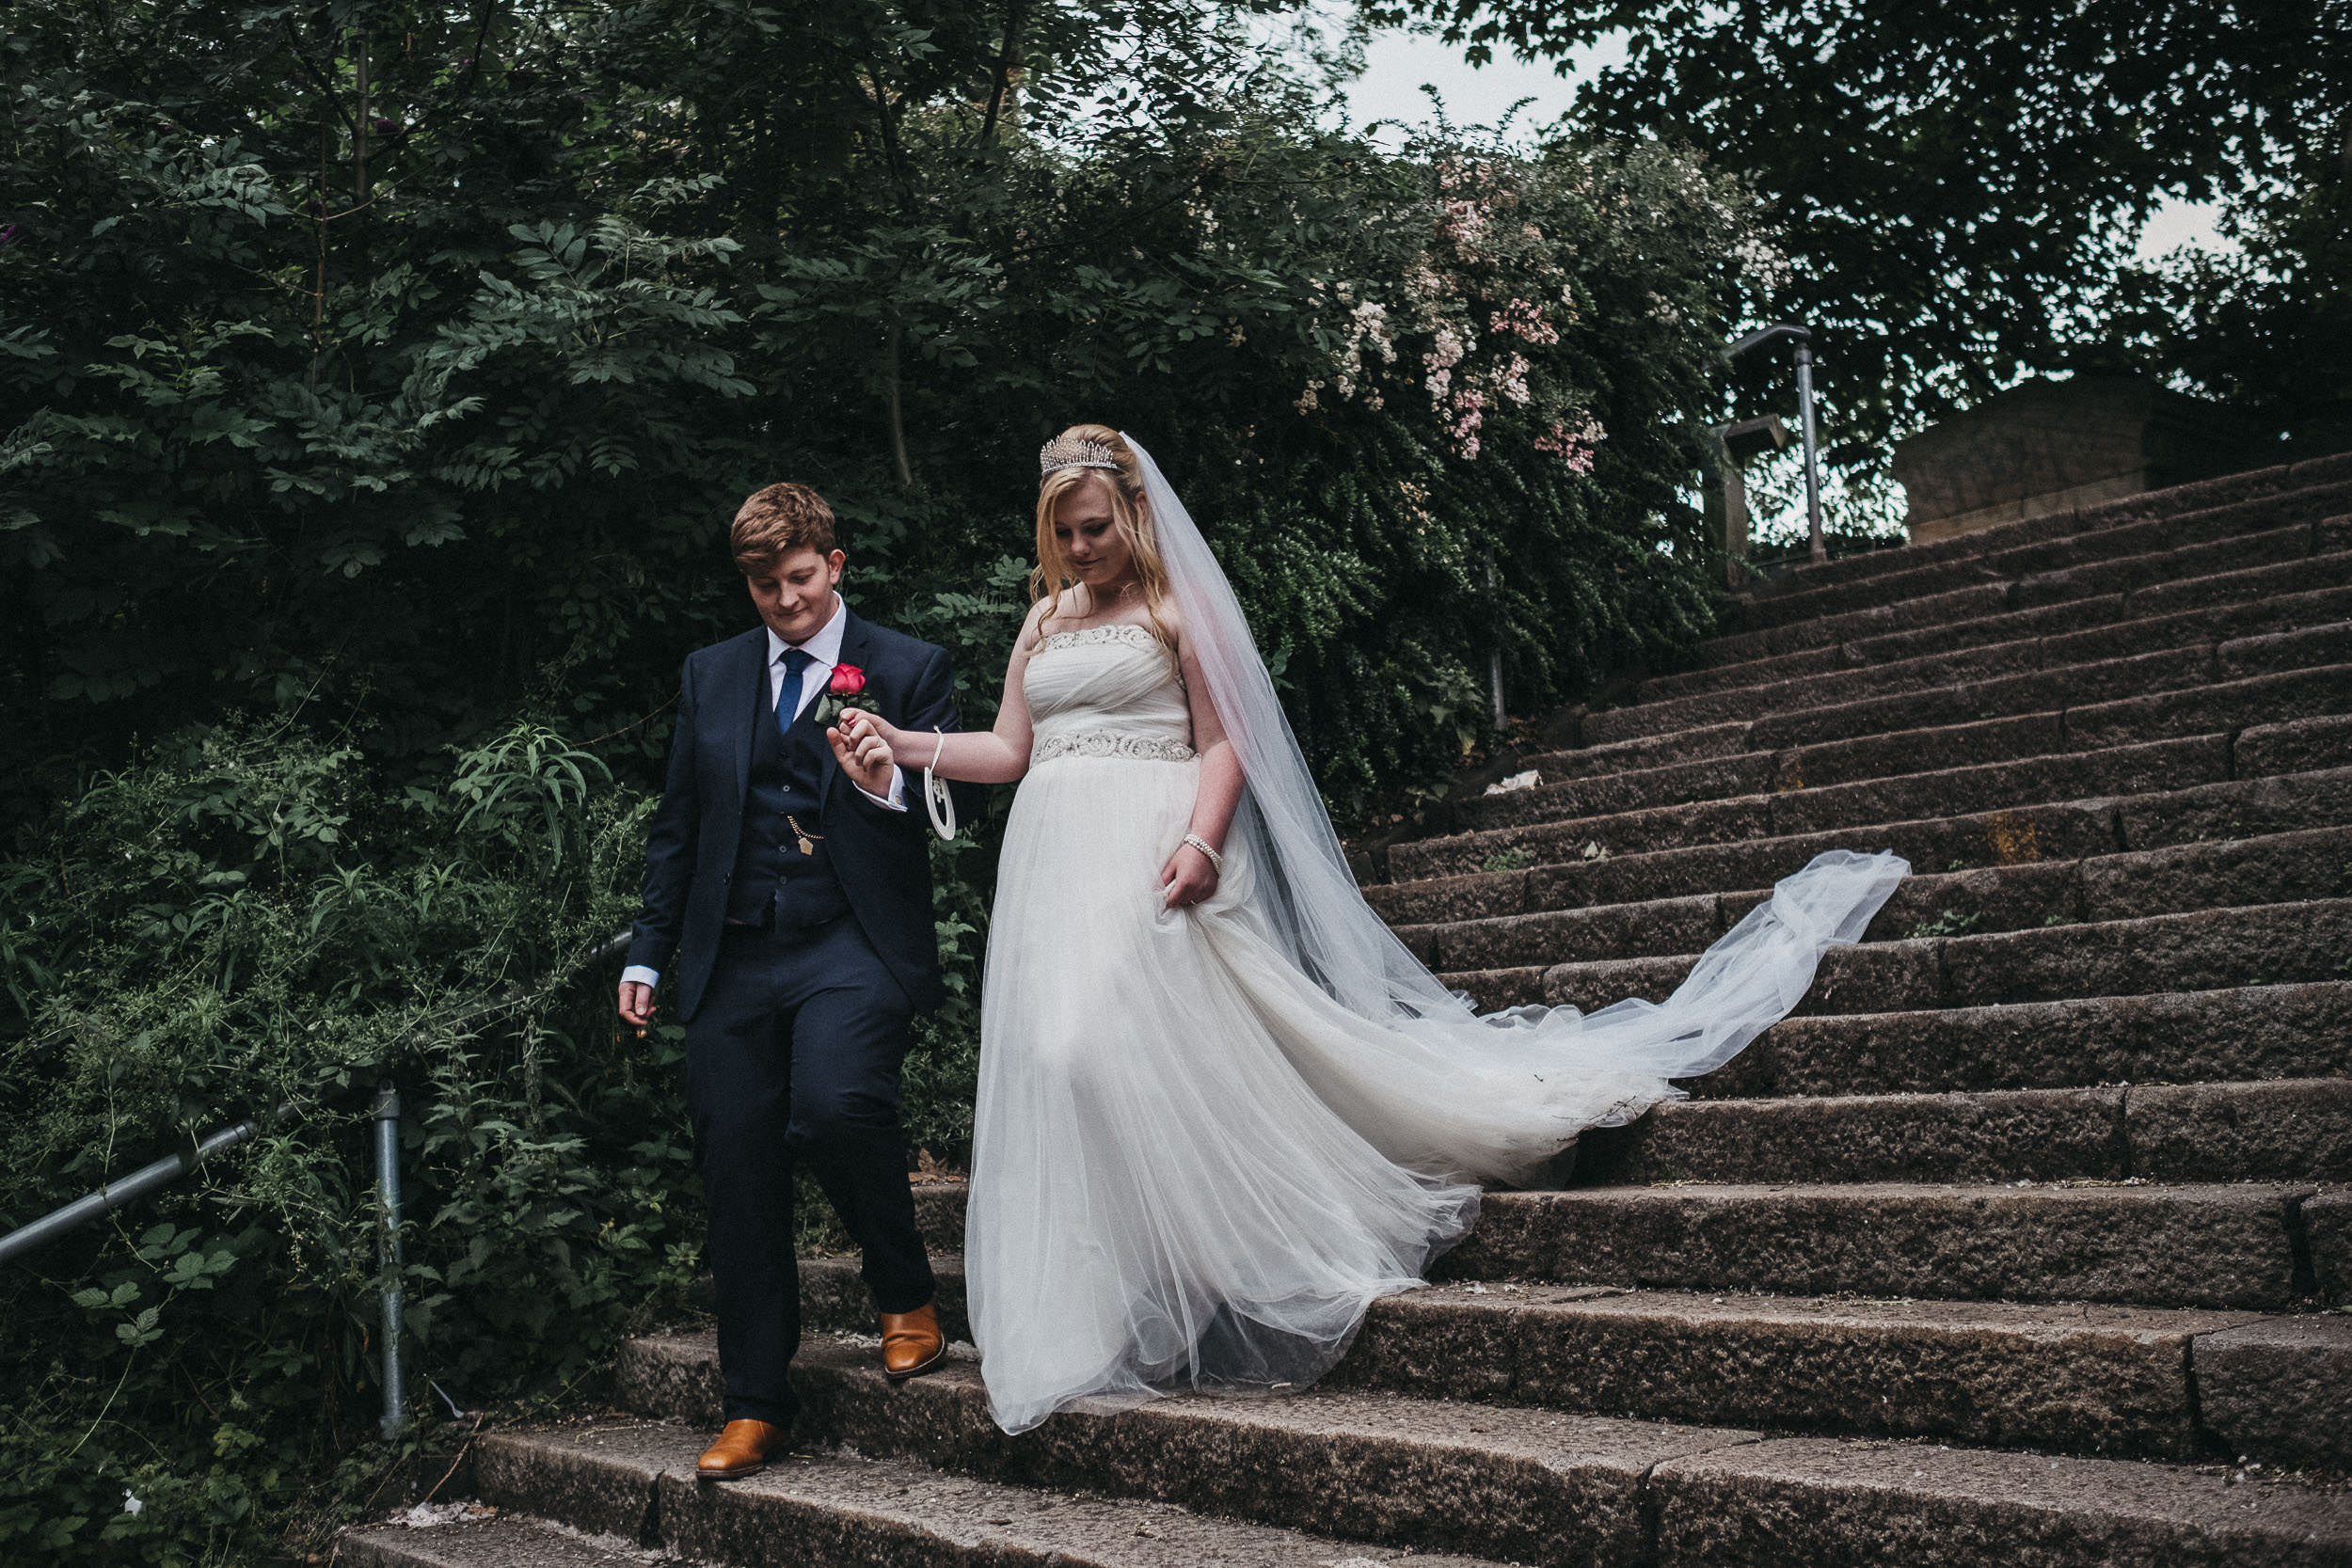 Groom holds brides hand as they walk down stairs